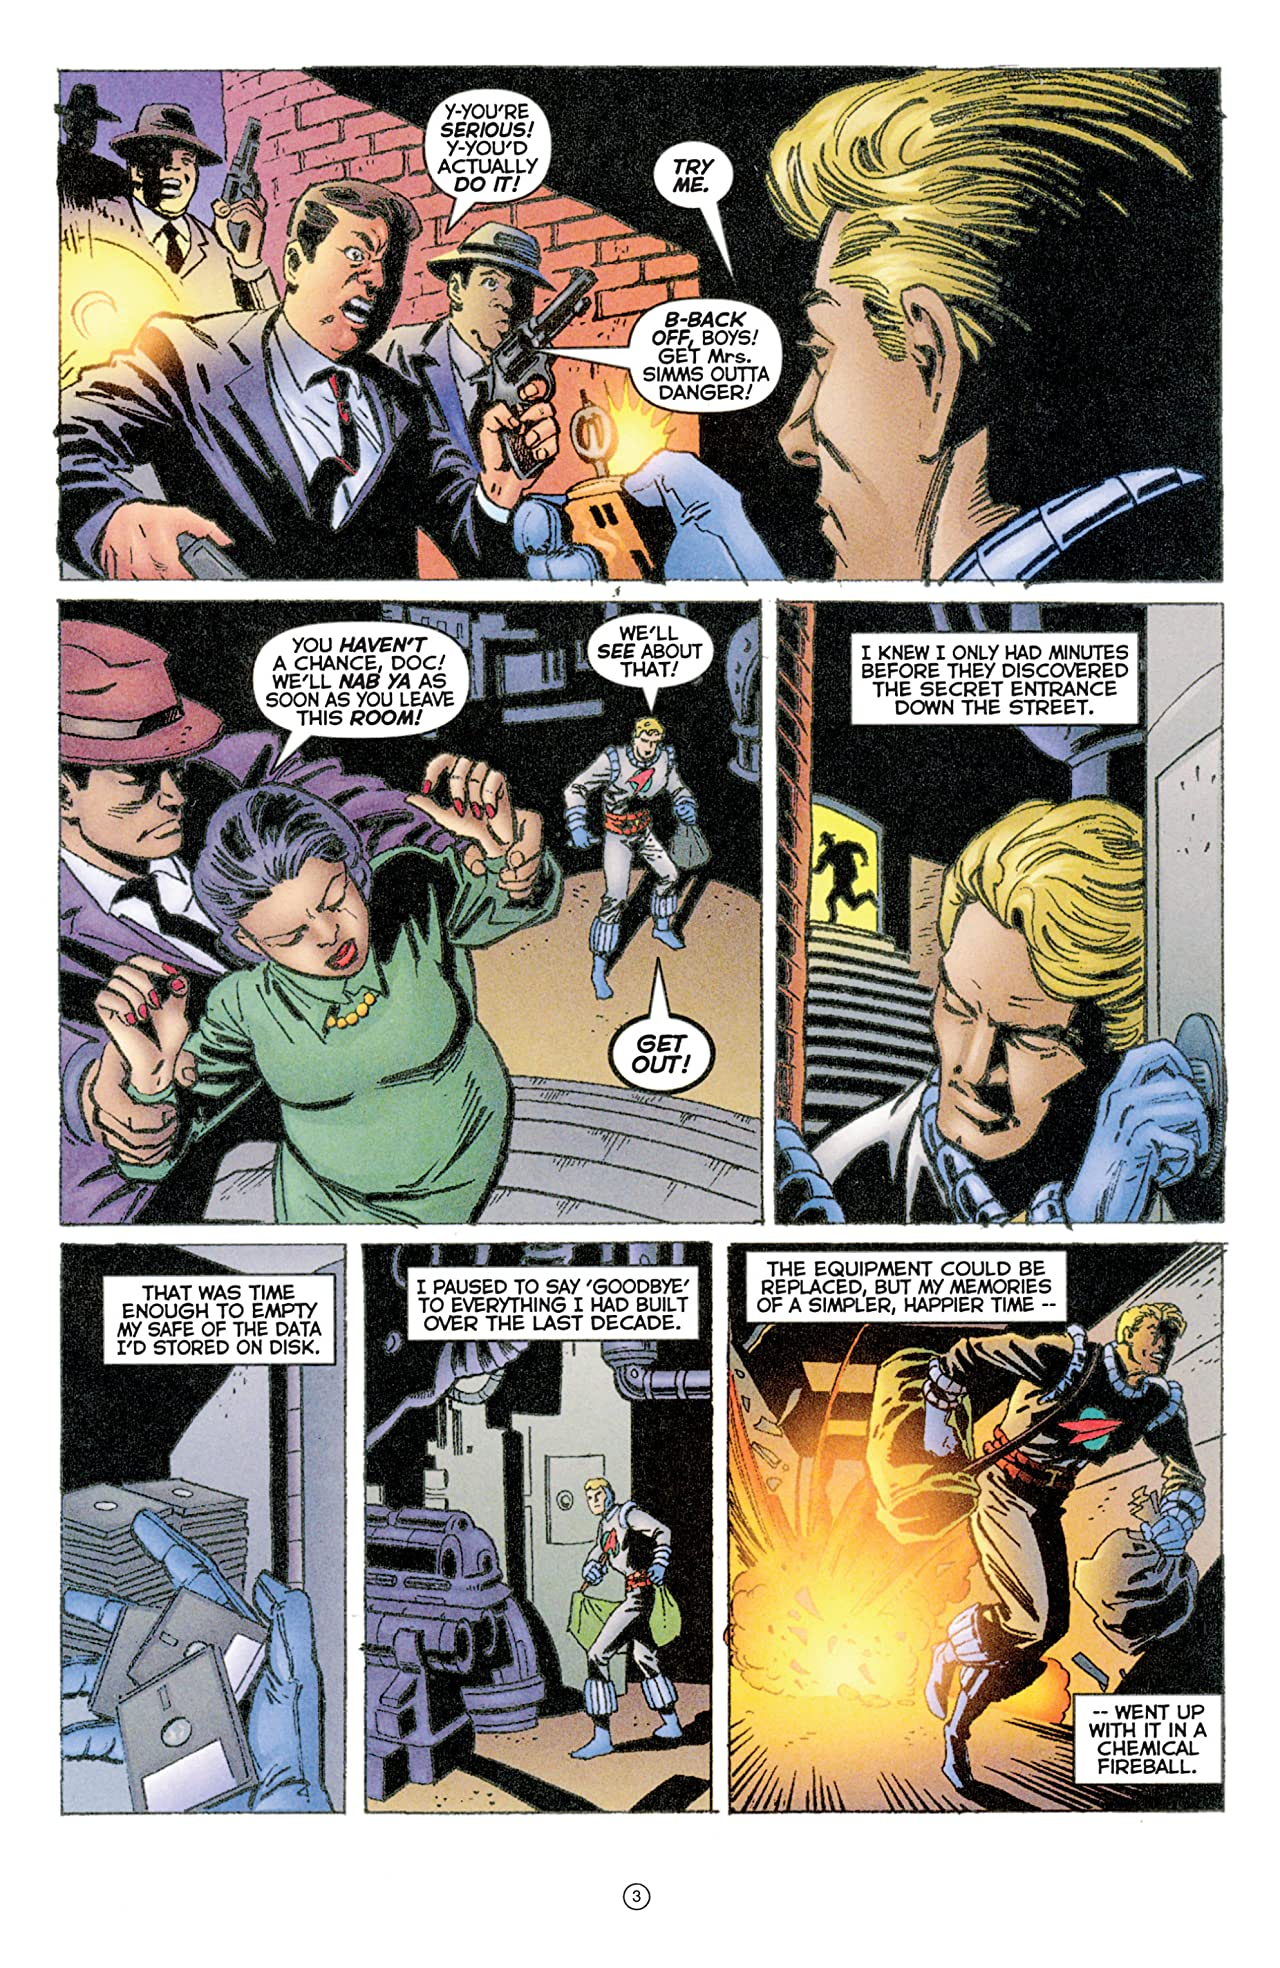 Doctor Tomorrow (1997-1998) #5